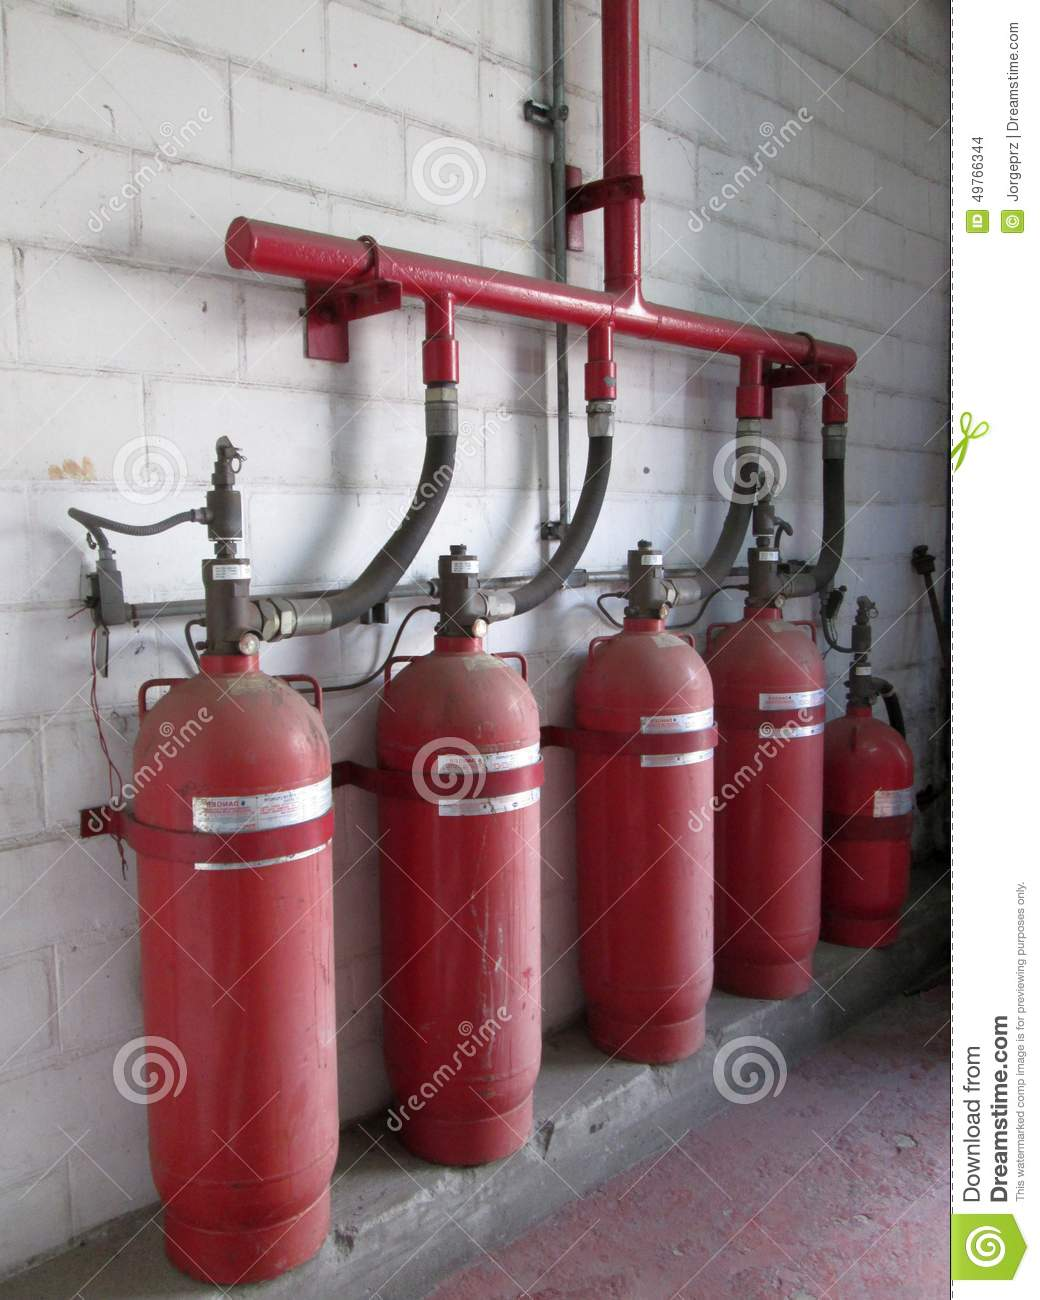 Halon 1301 Cylinders Fire Extinguisher System Stock Photo